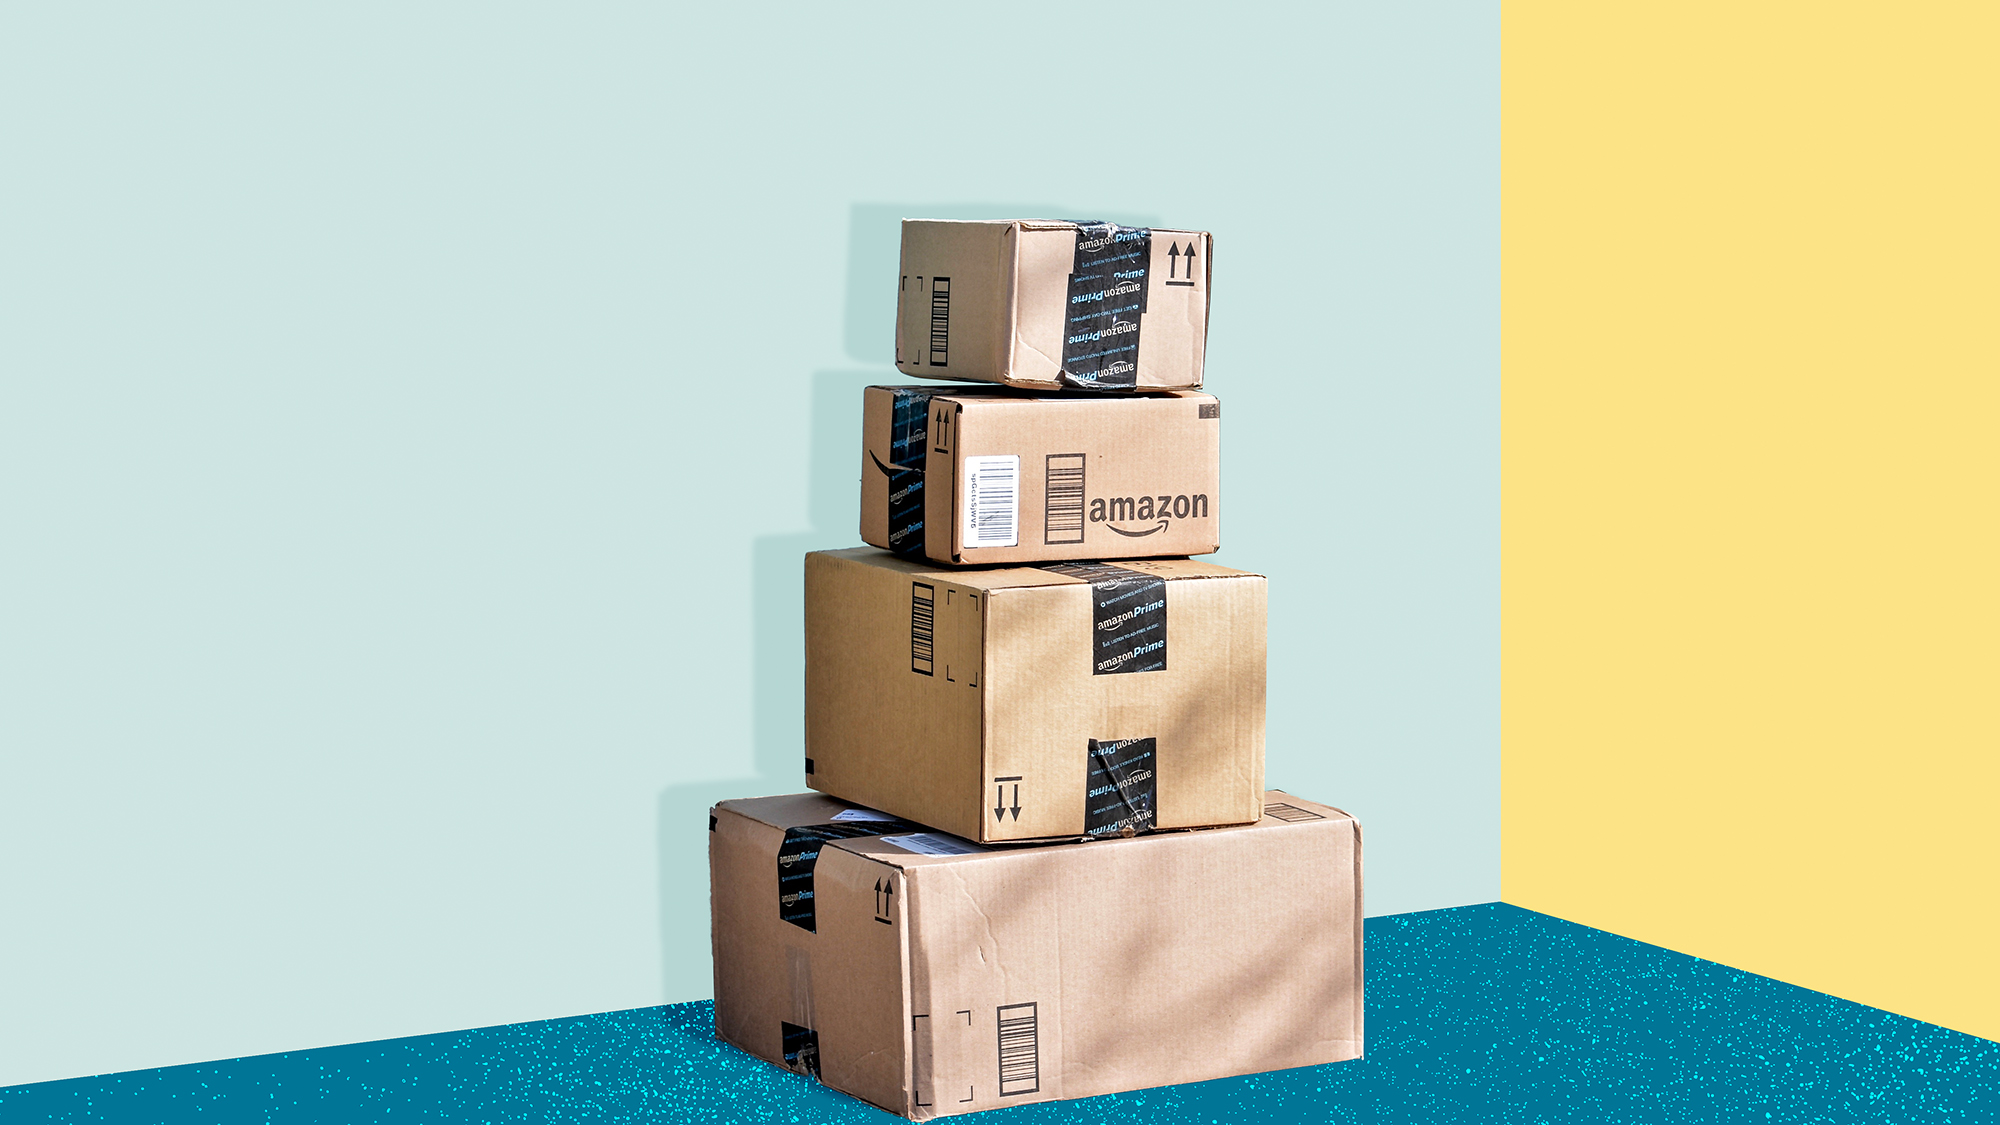 a stack of amazon boxes on a designed background